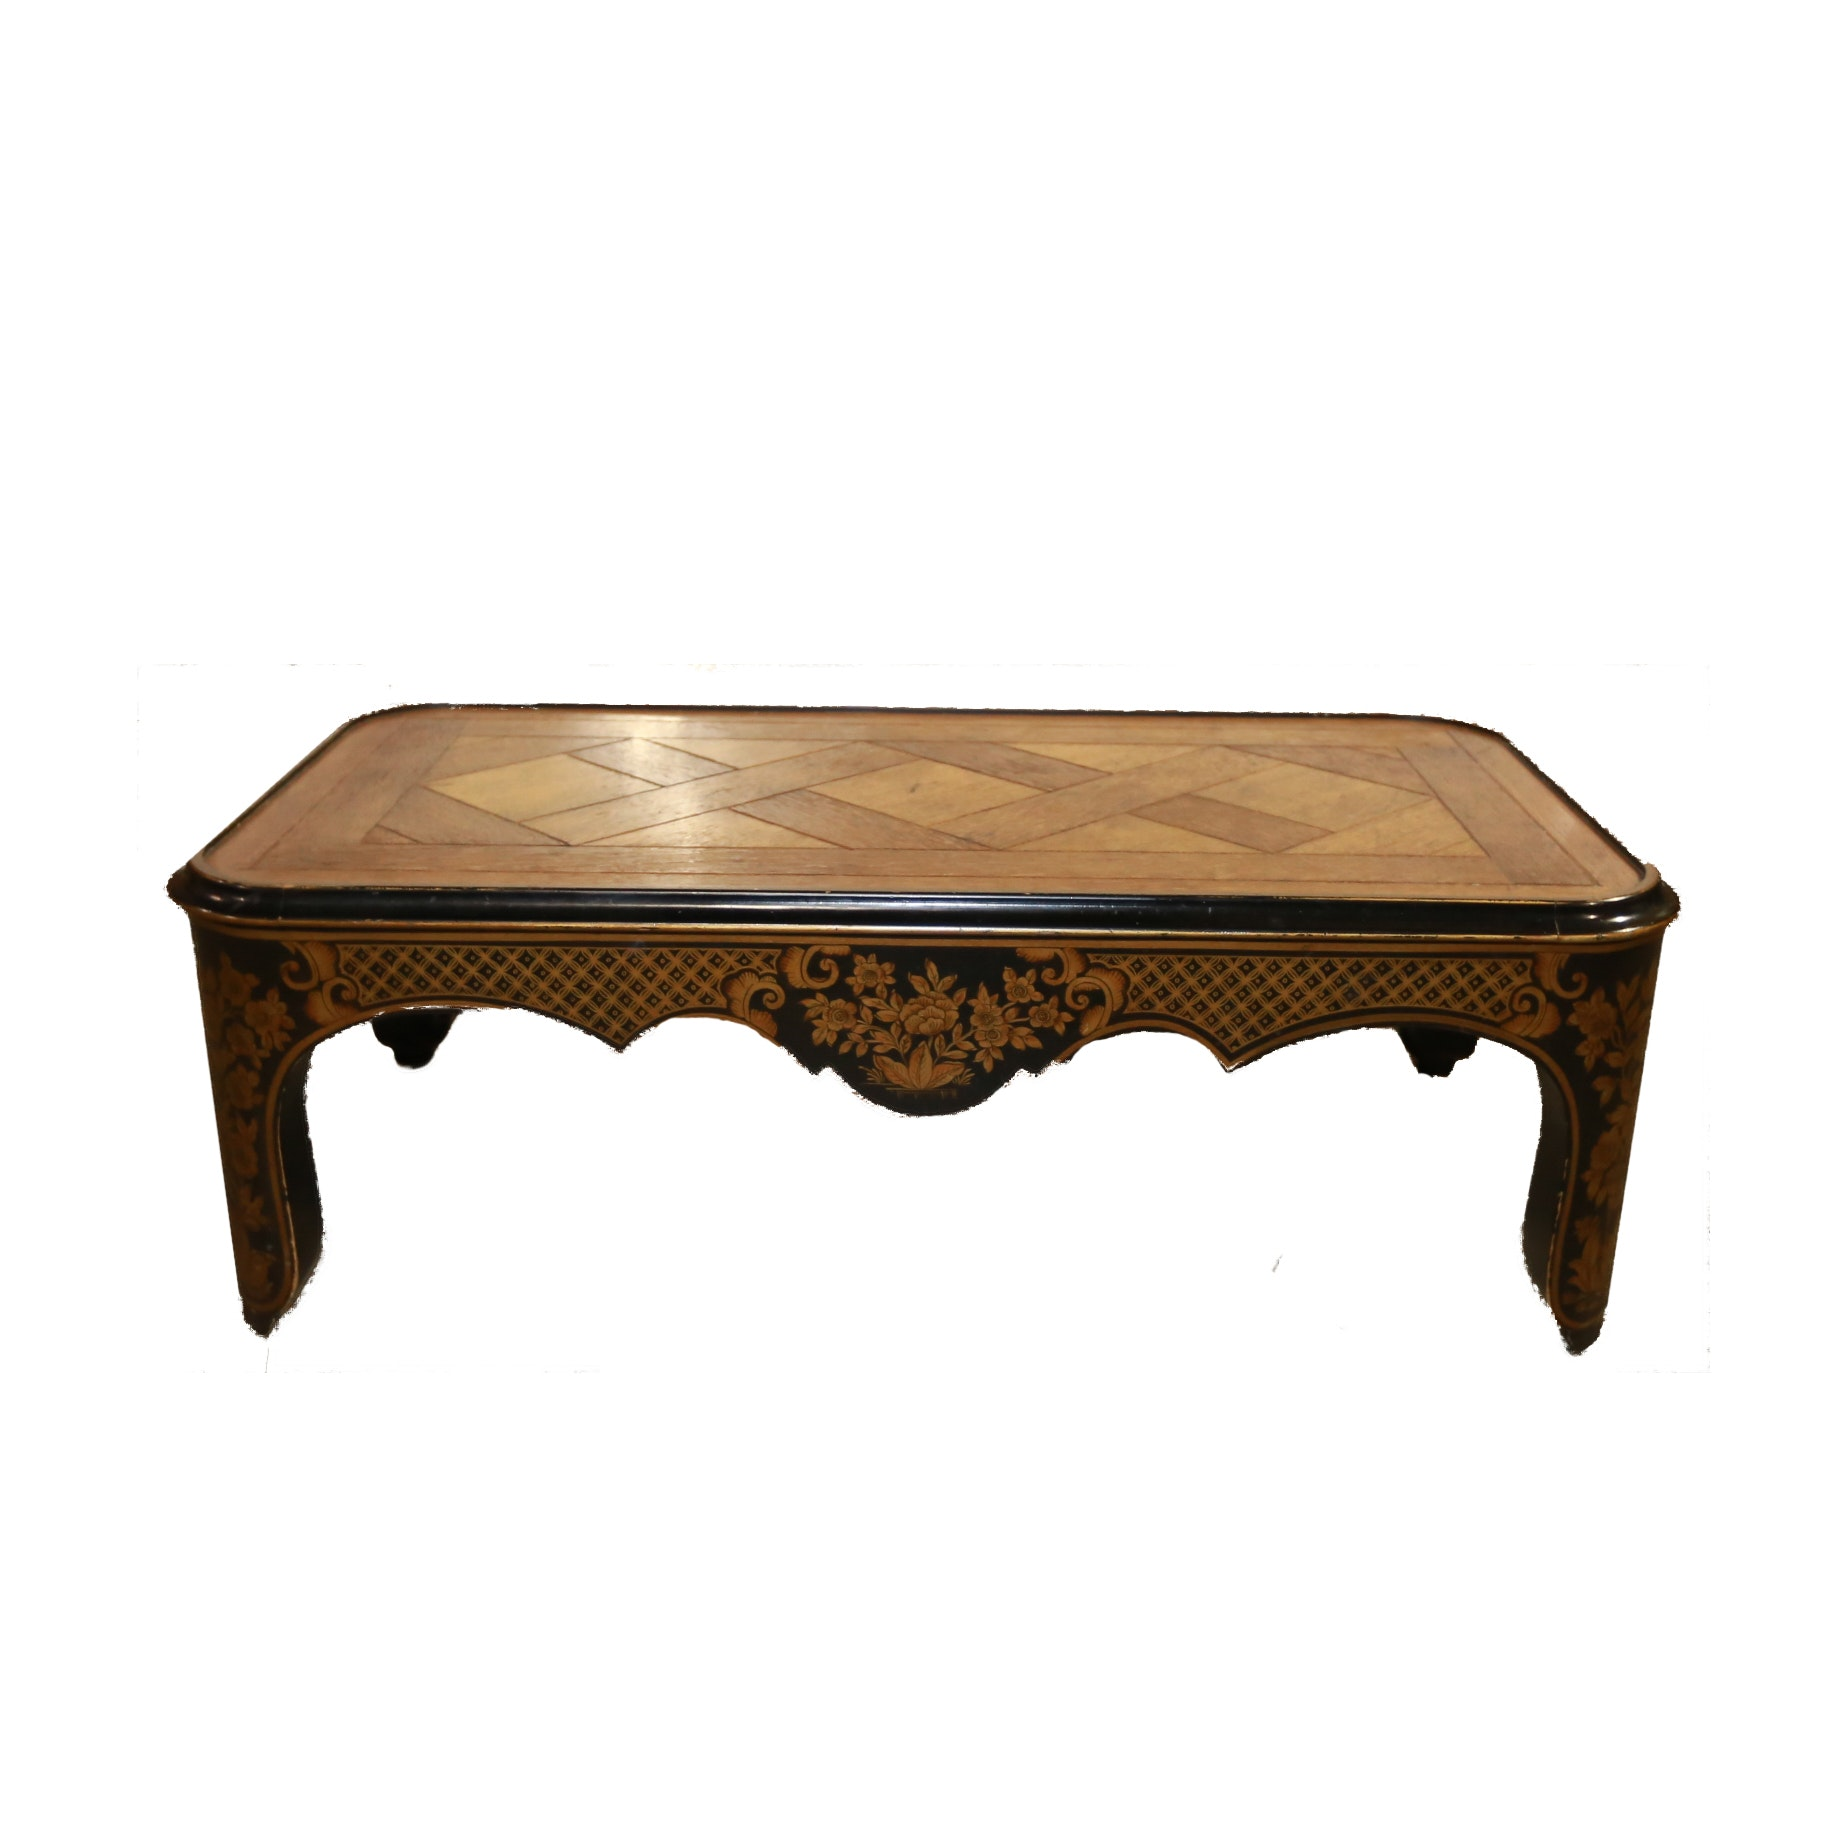 Bon Oak And Chinoiserie Coffee Table By Baker Furniture ...